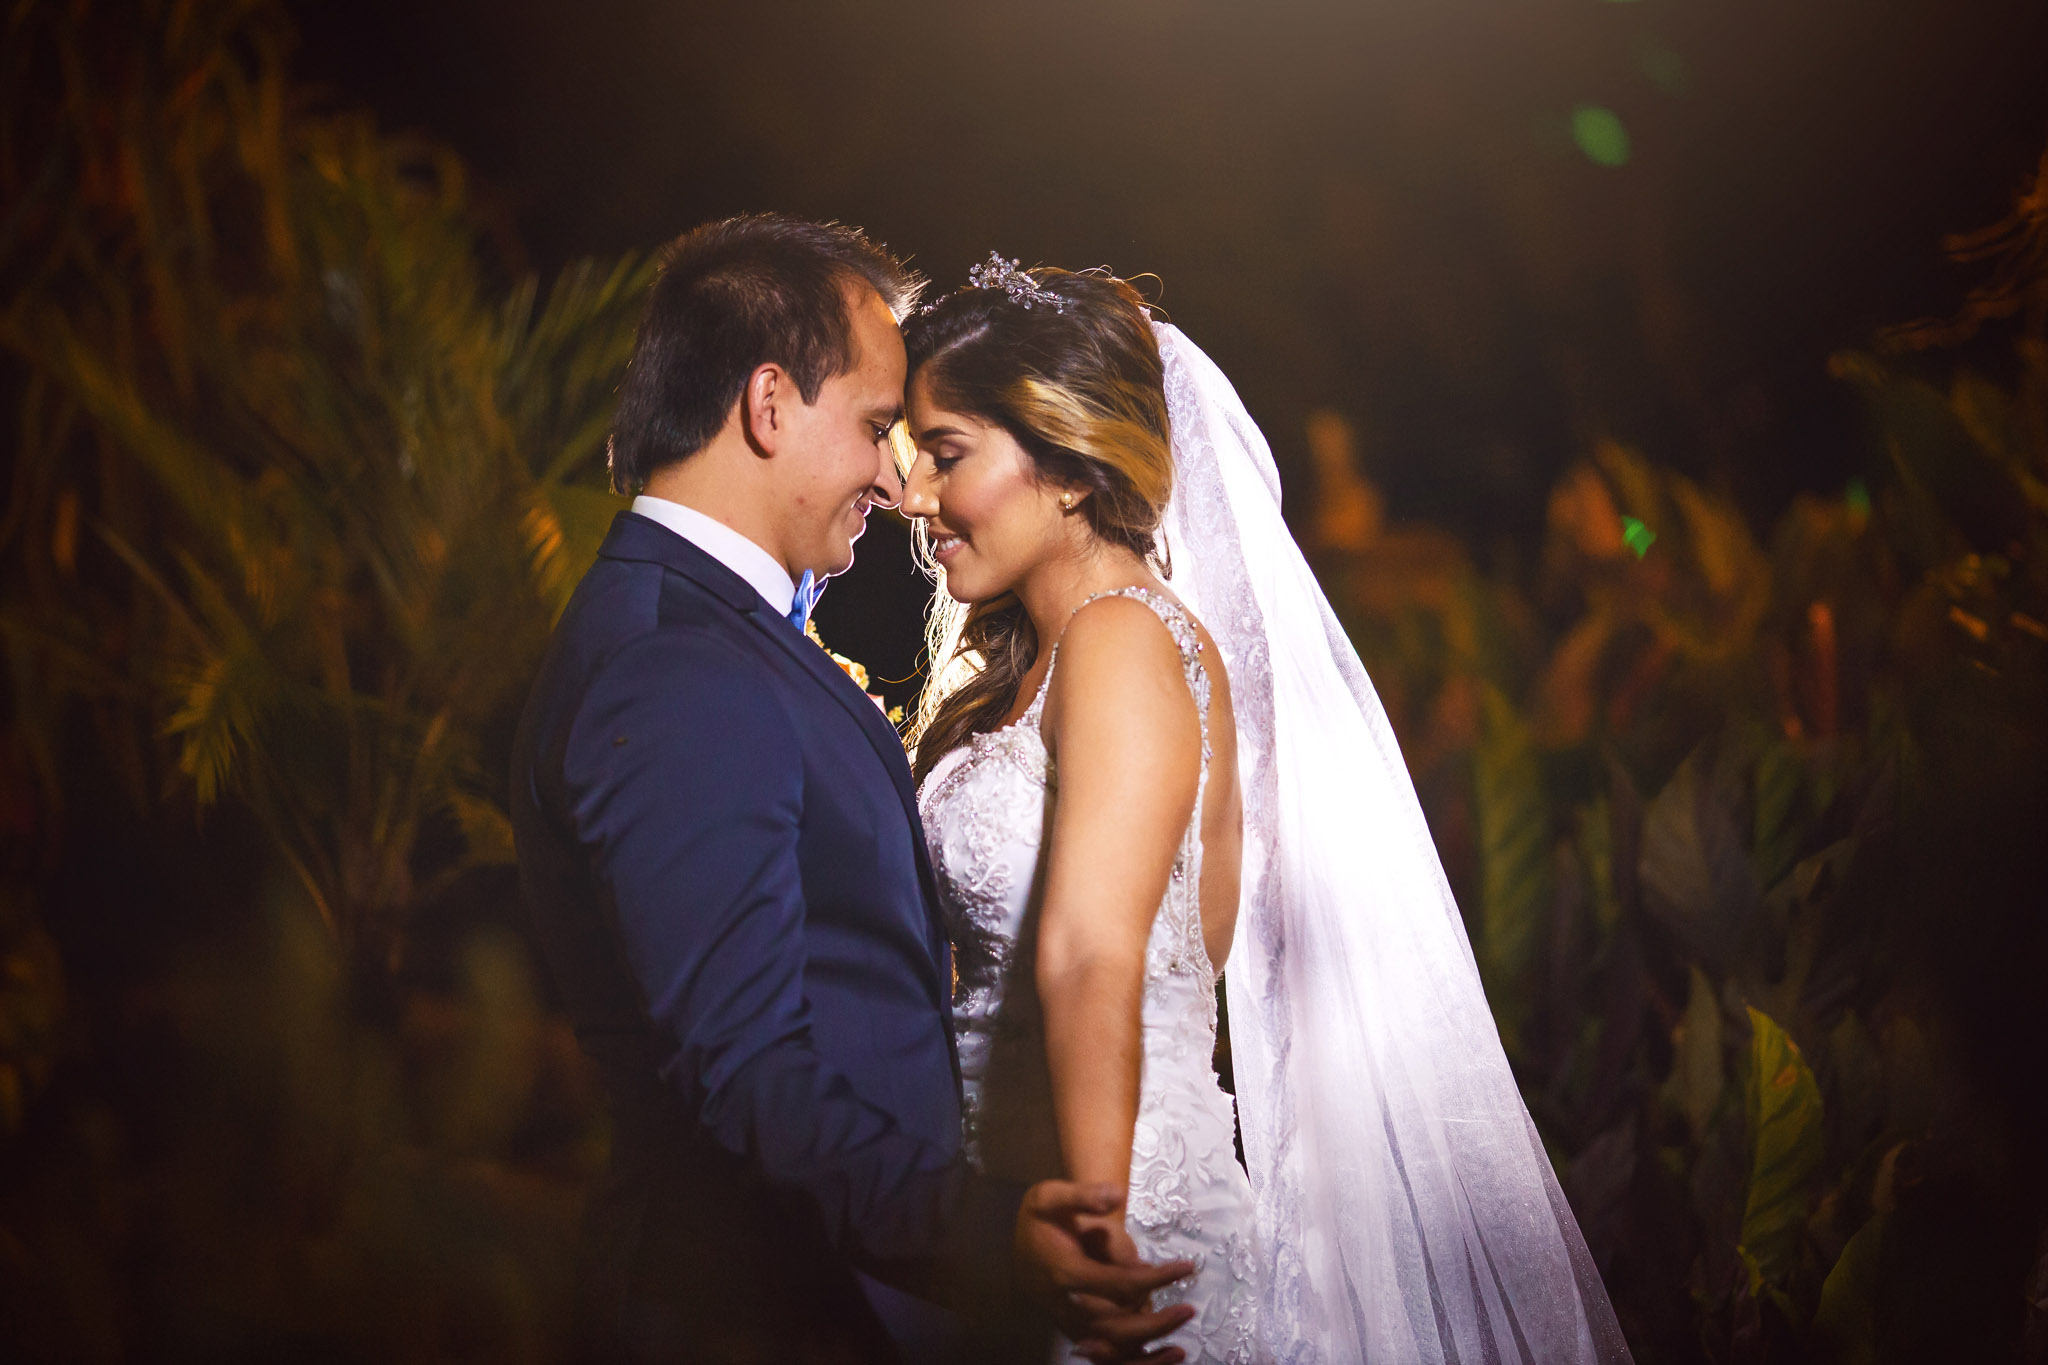 wedding-travellers-destination-wedding-photography-colombia